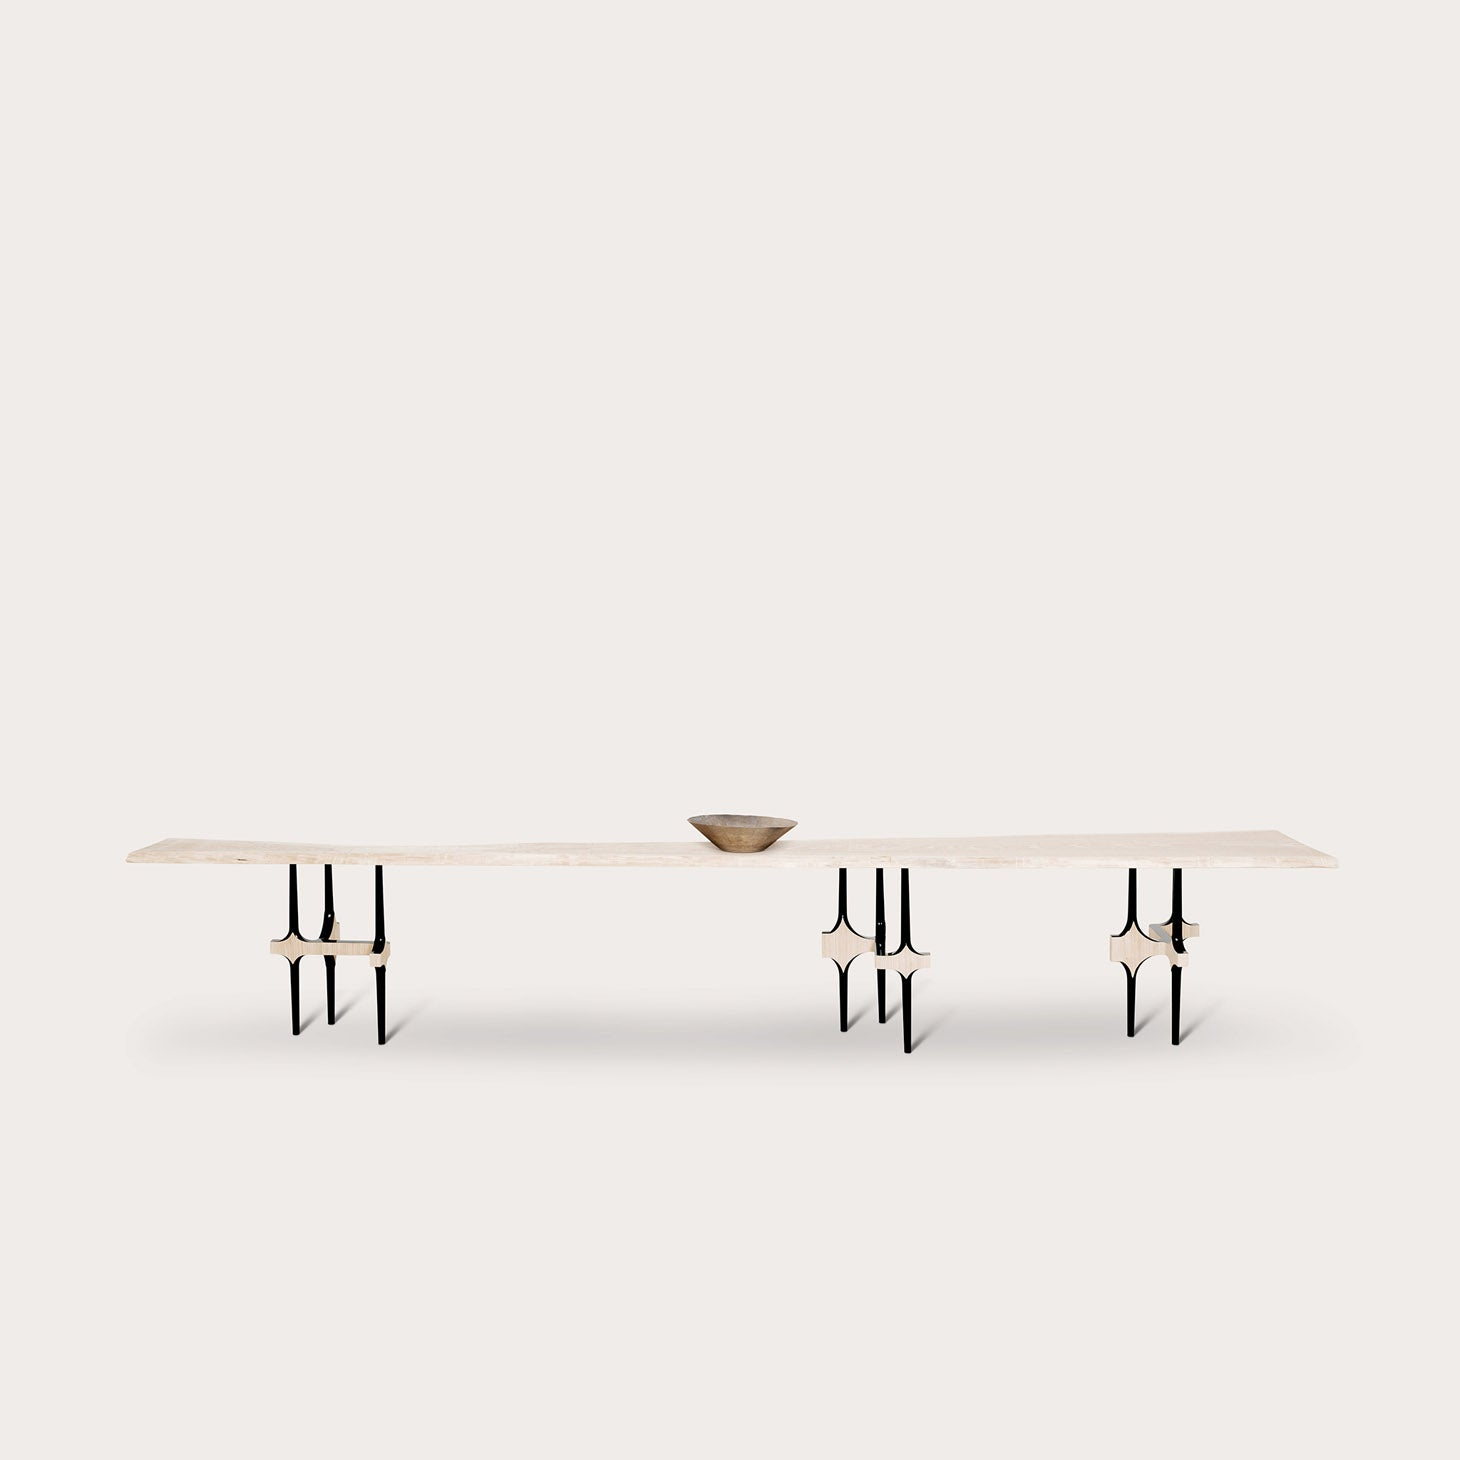 TIL Tables Christophe Delcourt Designer Furniture Sku: 008-230-10425